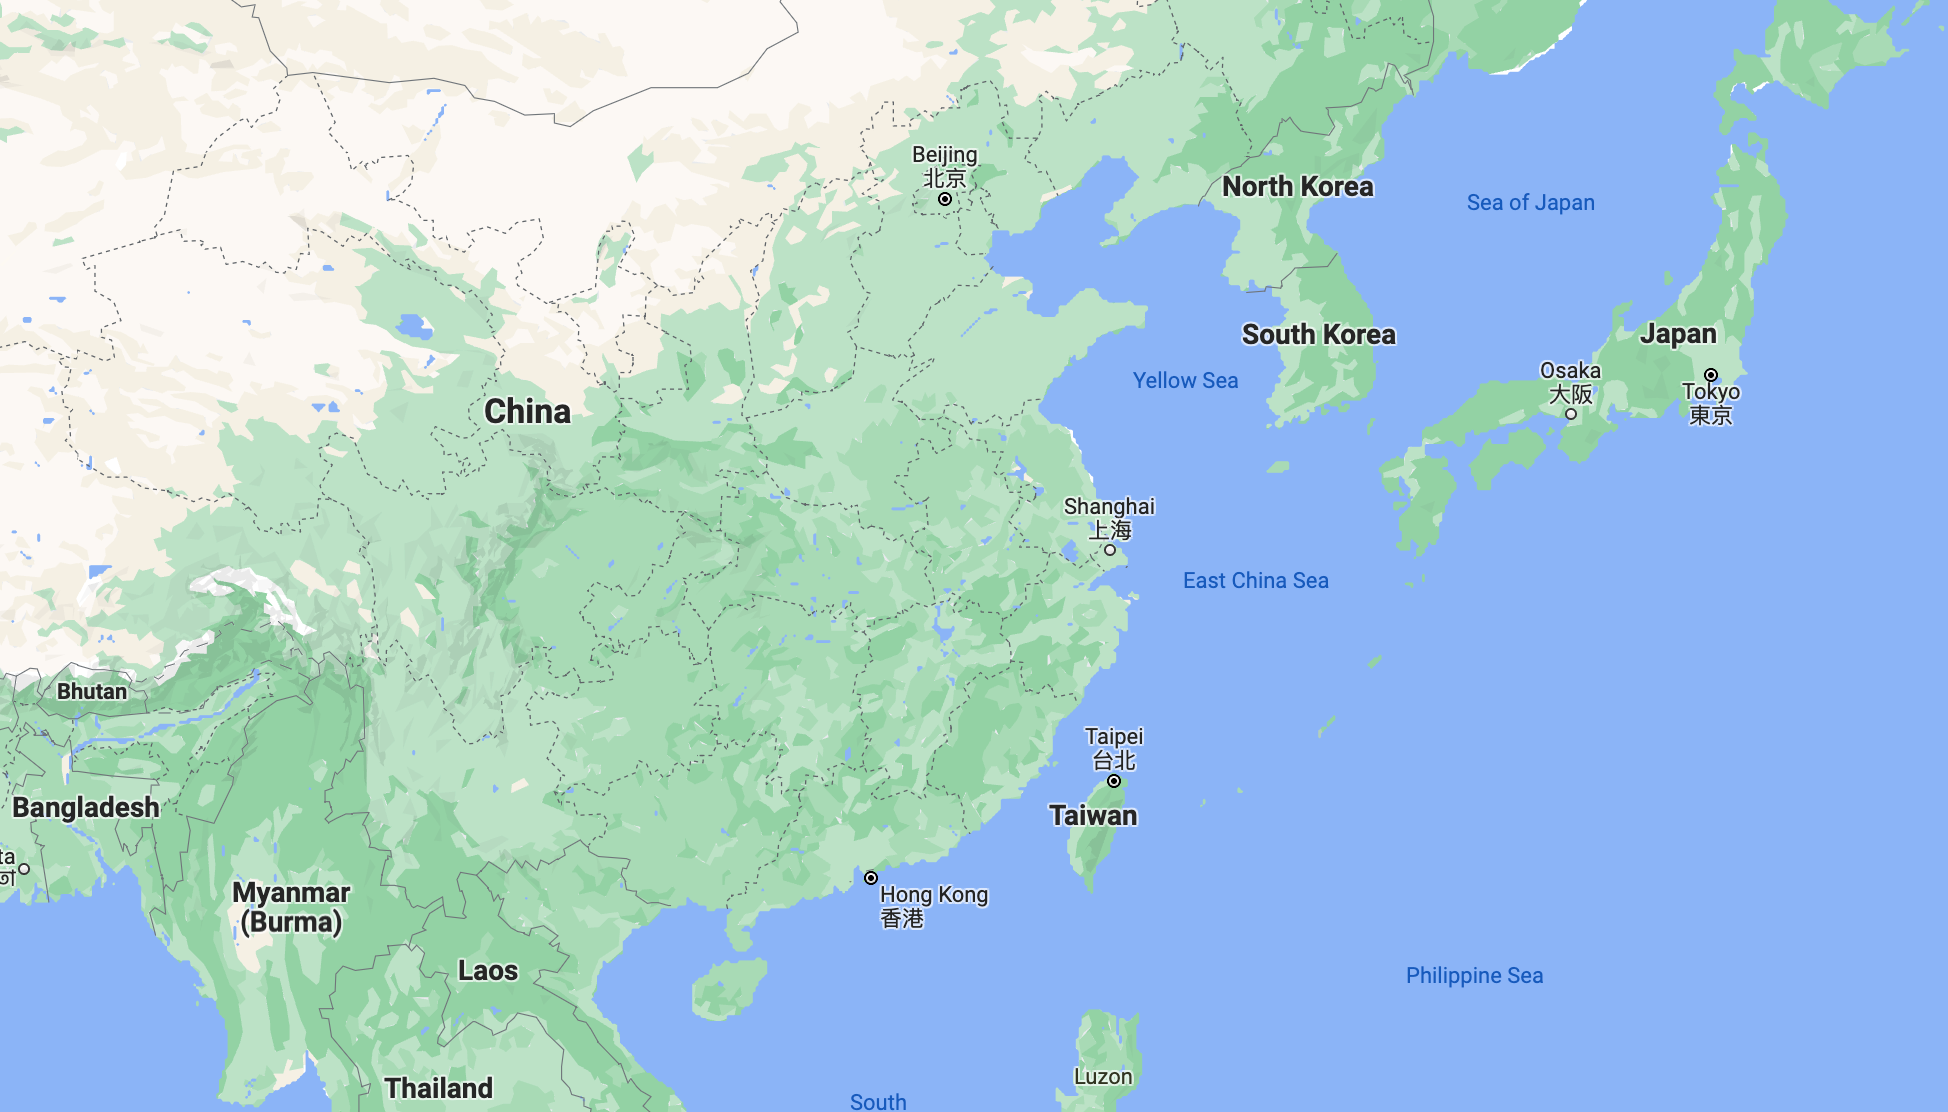 Google maps: A map of the region, featuring Taiwan, China, South Korea, North Korea and Japan.